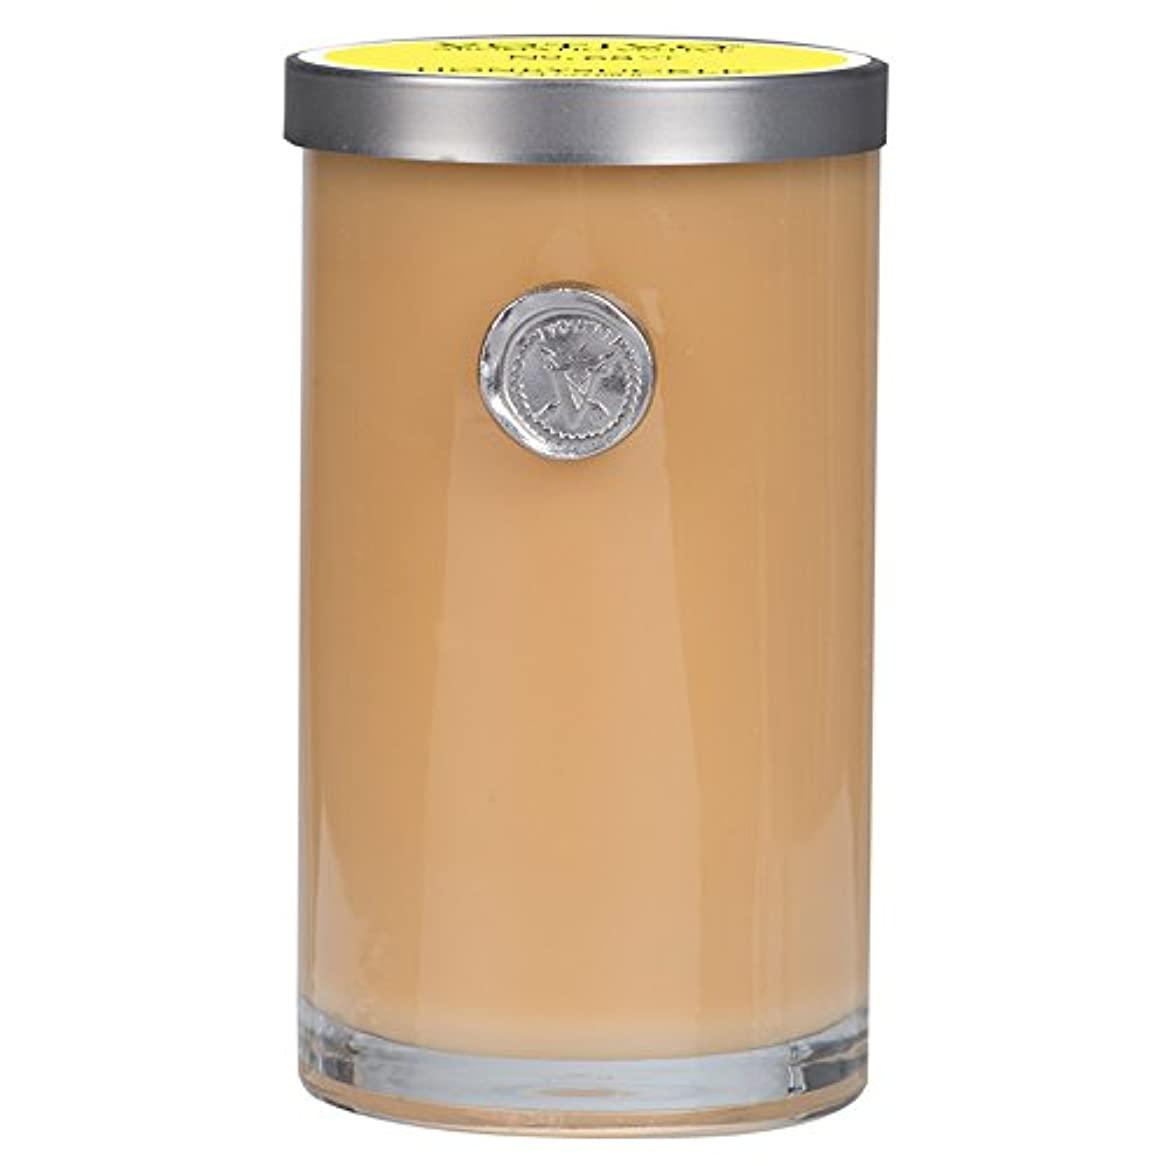 銀行東ティモール病んでいるVOTIVO AROMATIC VOTIVE CANDLE HONEYSUCKLE